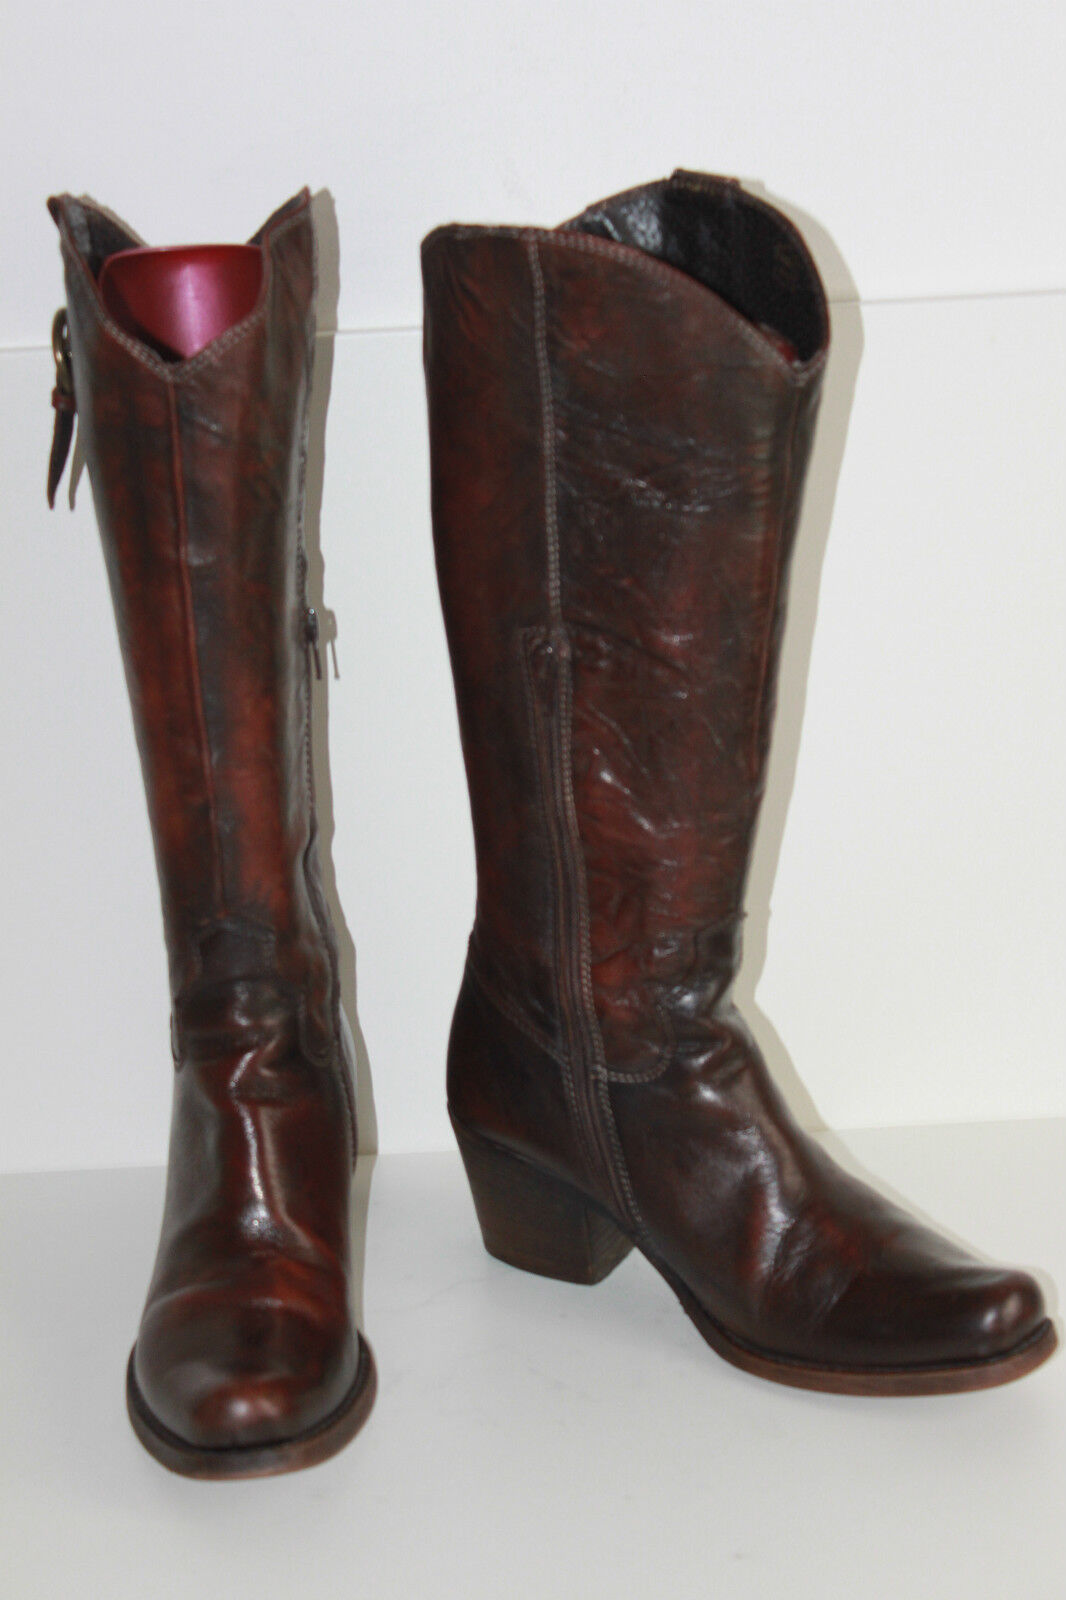 Boots SAN MARINA Leather Crumpled Cognac Moderate T 38 BE